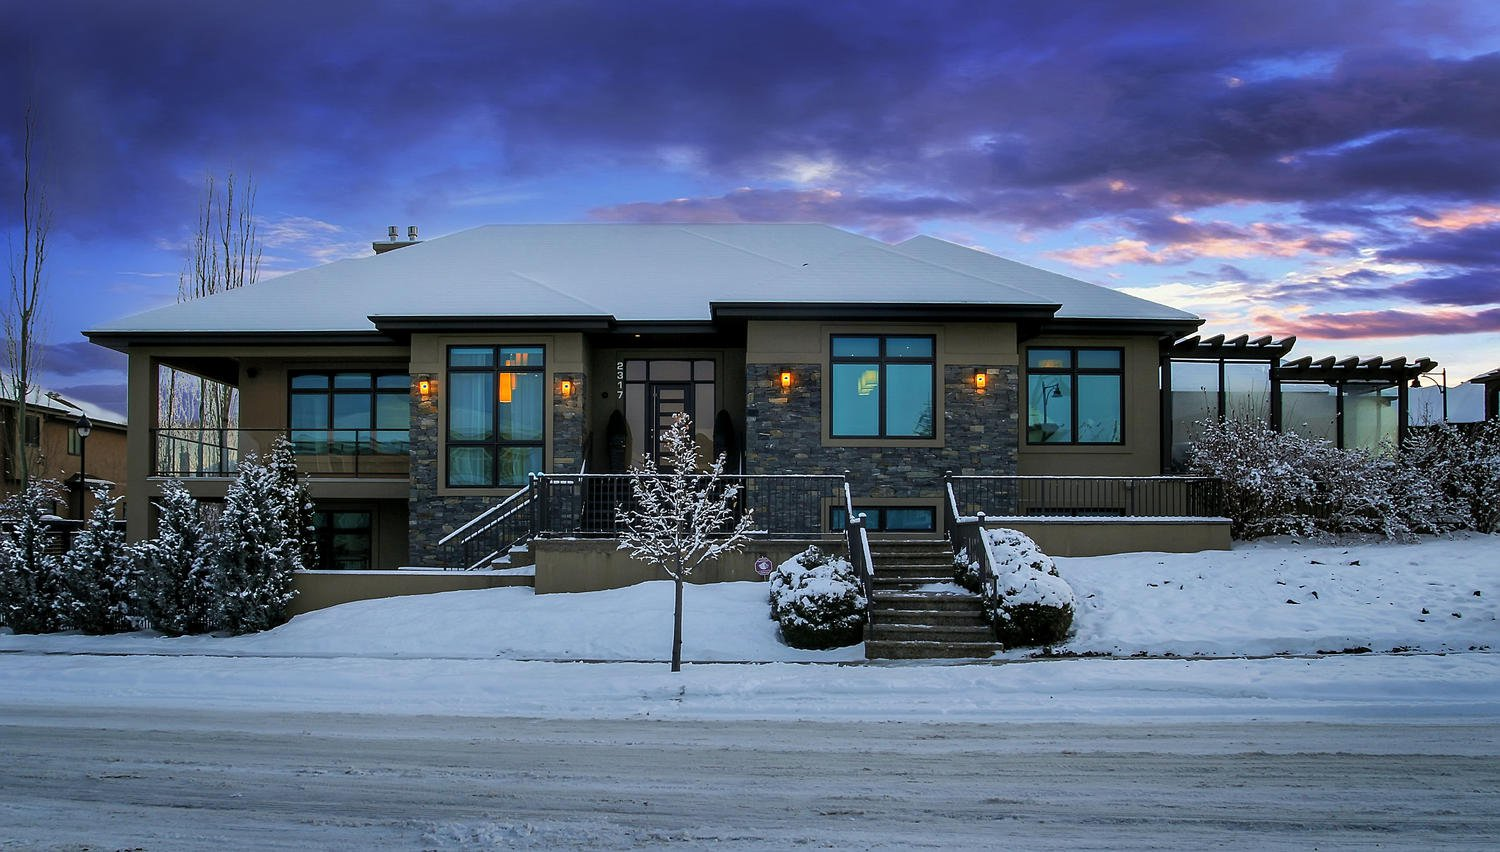 Main Photo: 2317 Martell LN in Edmonton: House for sale